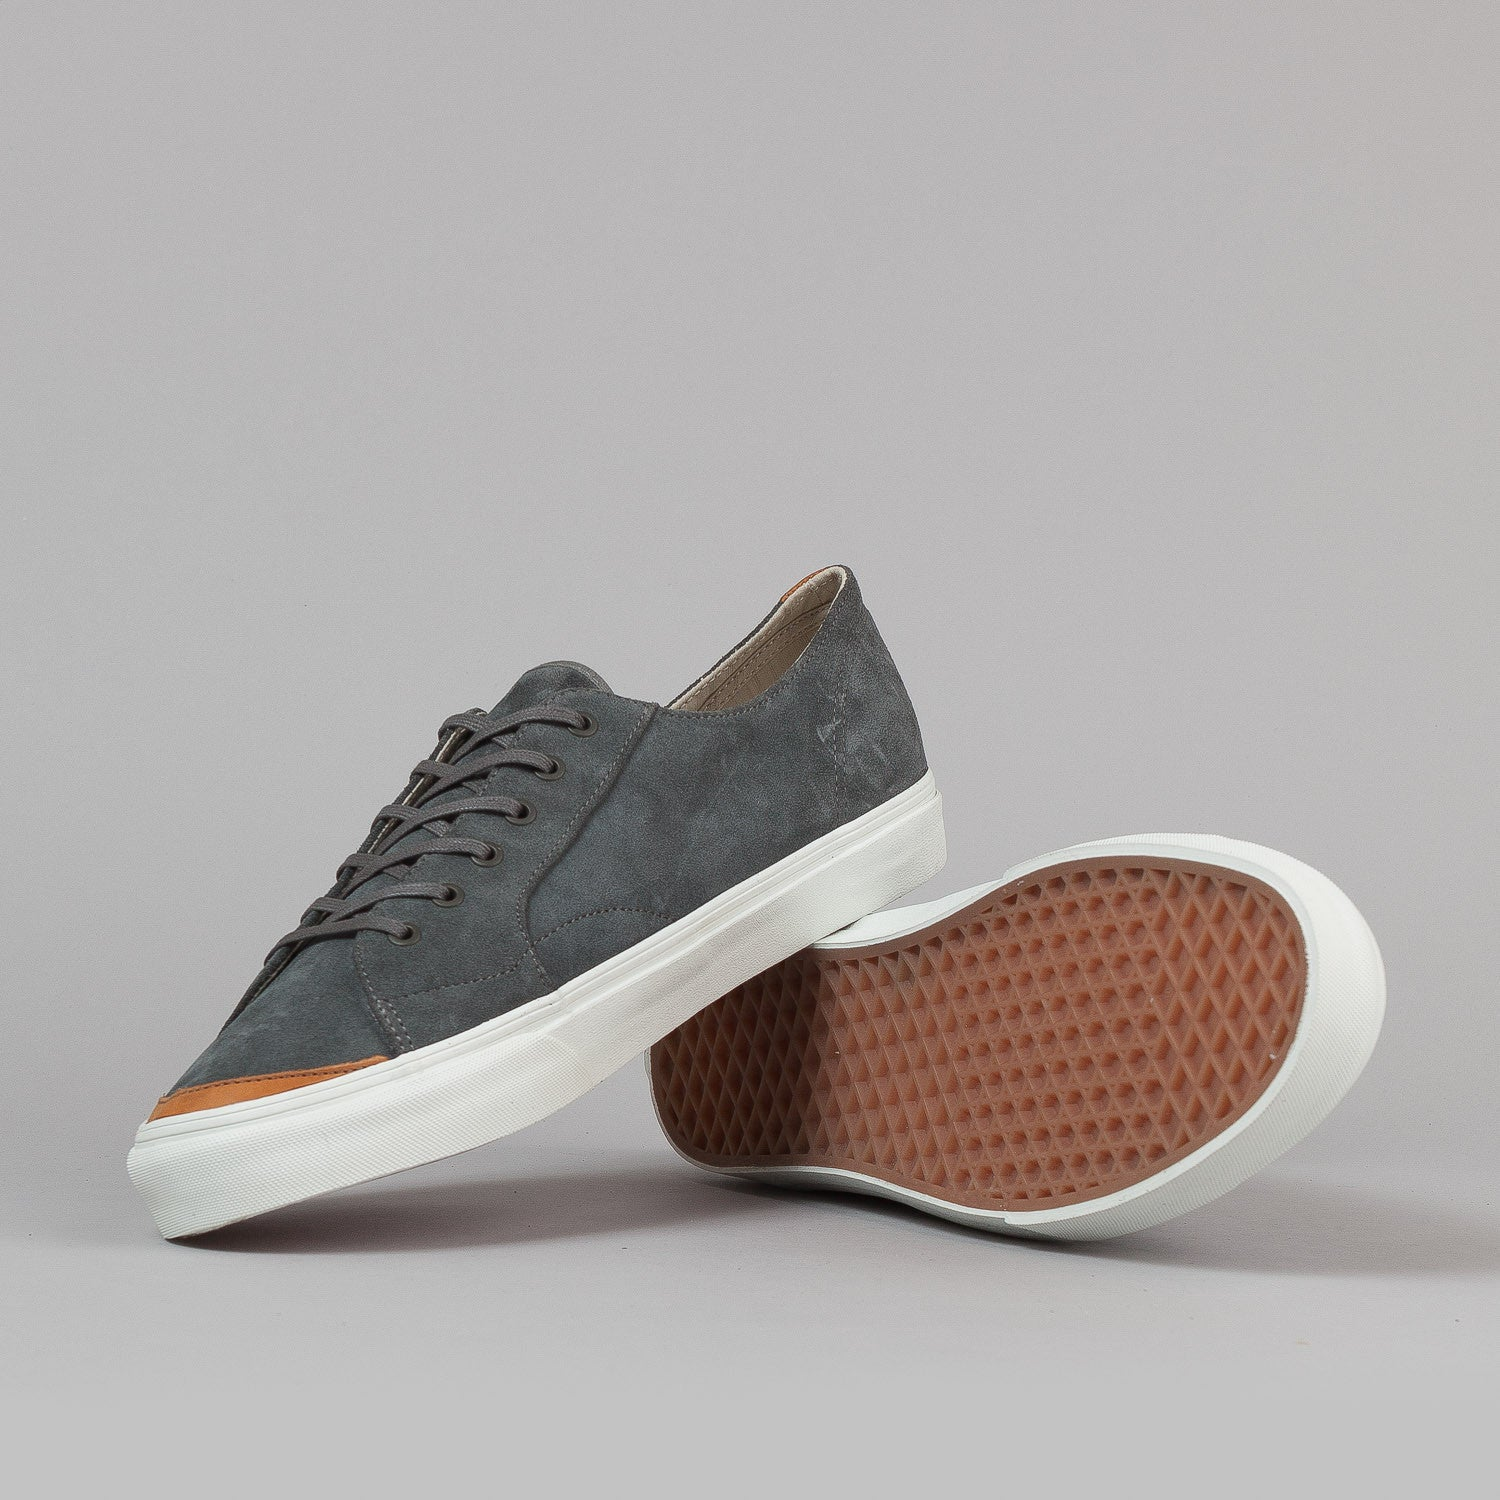 Vans Style 31 CA Shoes - Gunmetal / Wild Dove